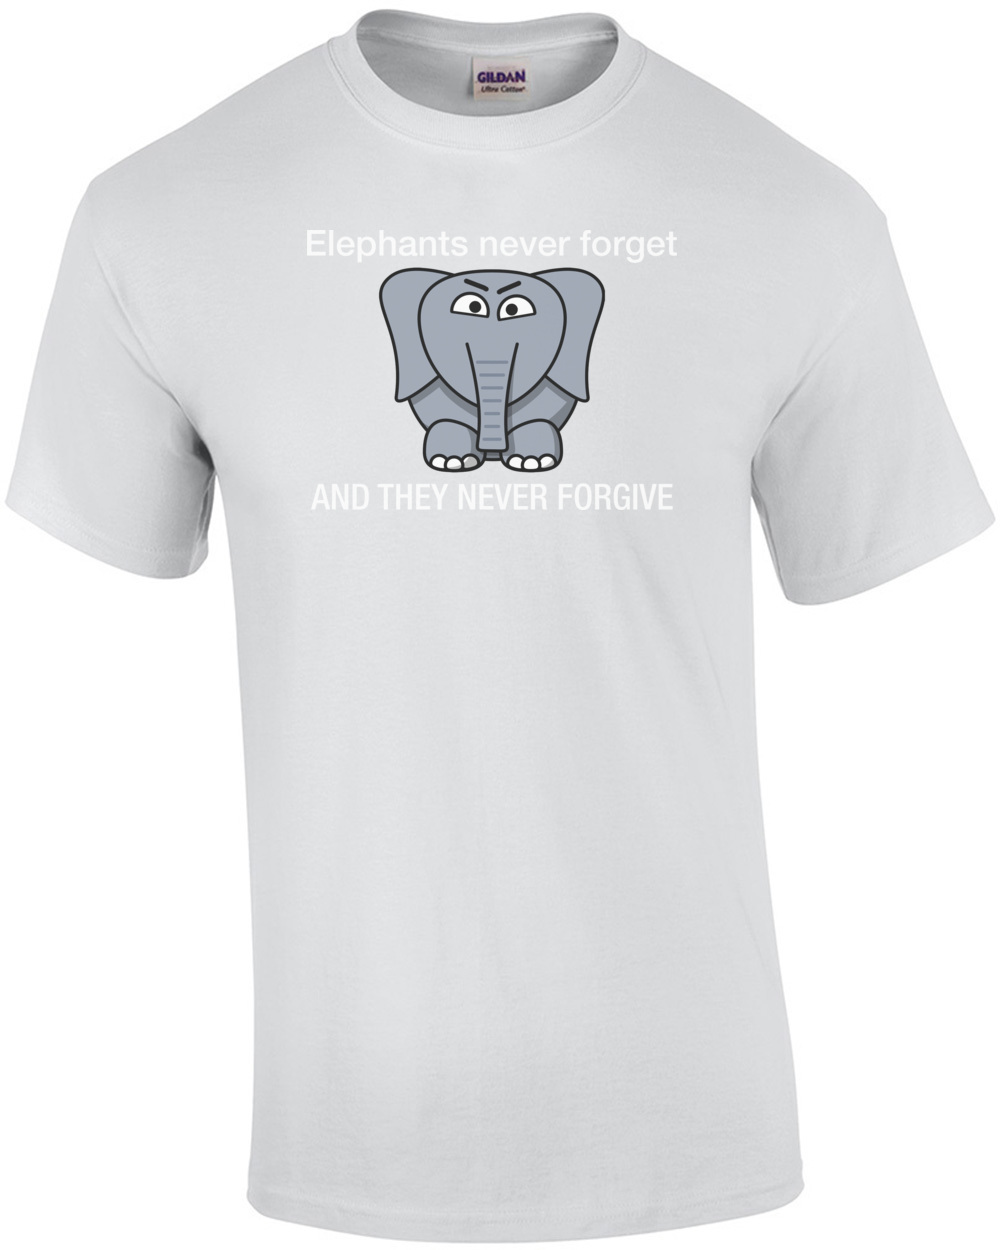 161e0457 Elephants never forget and they never forgive t-shirt